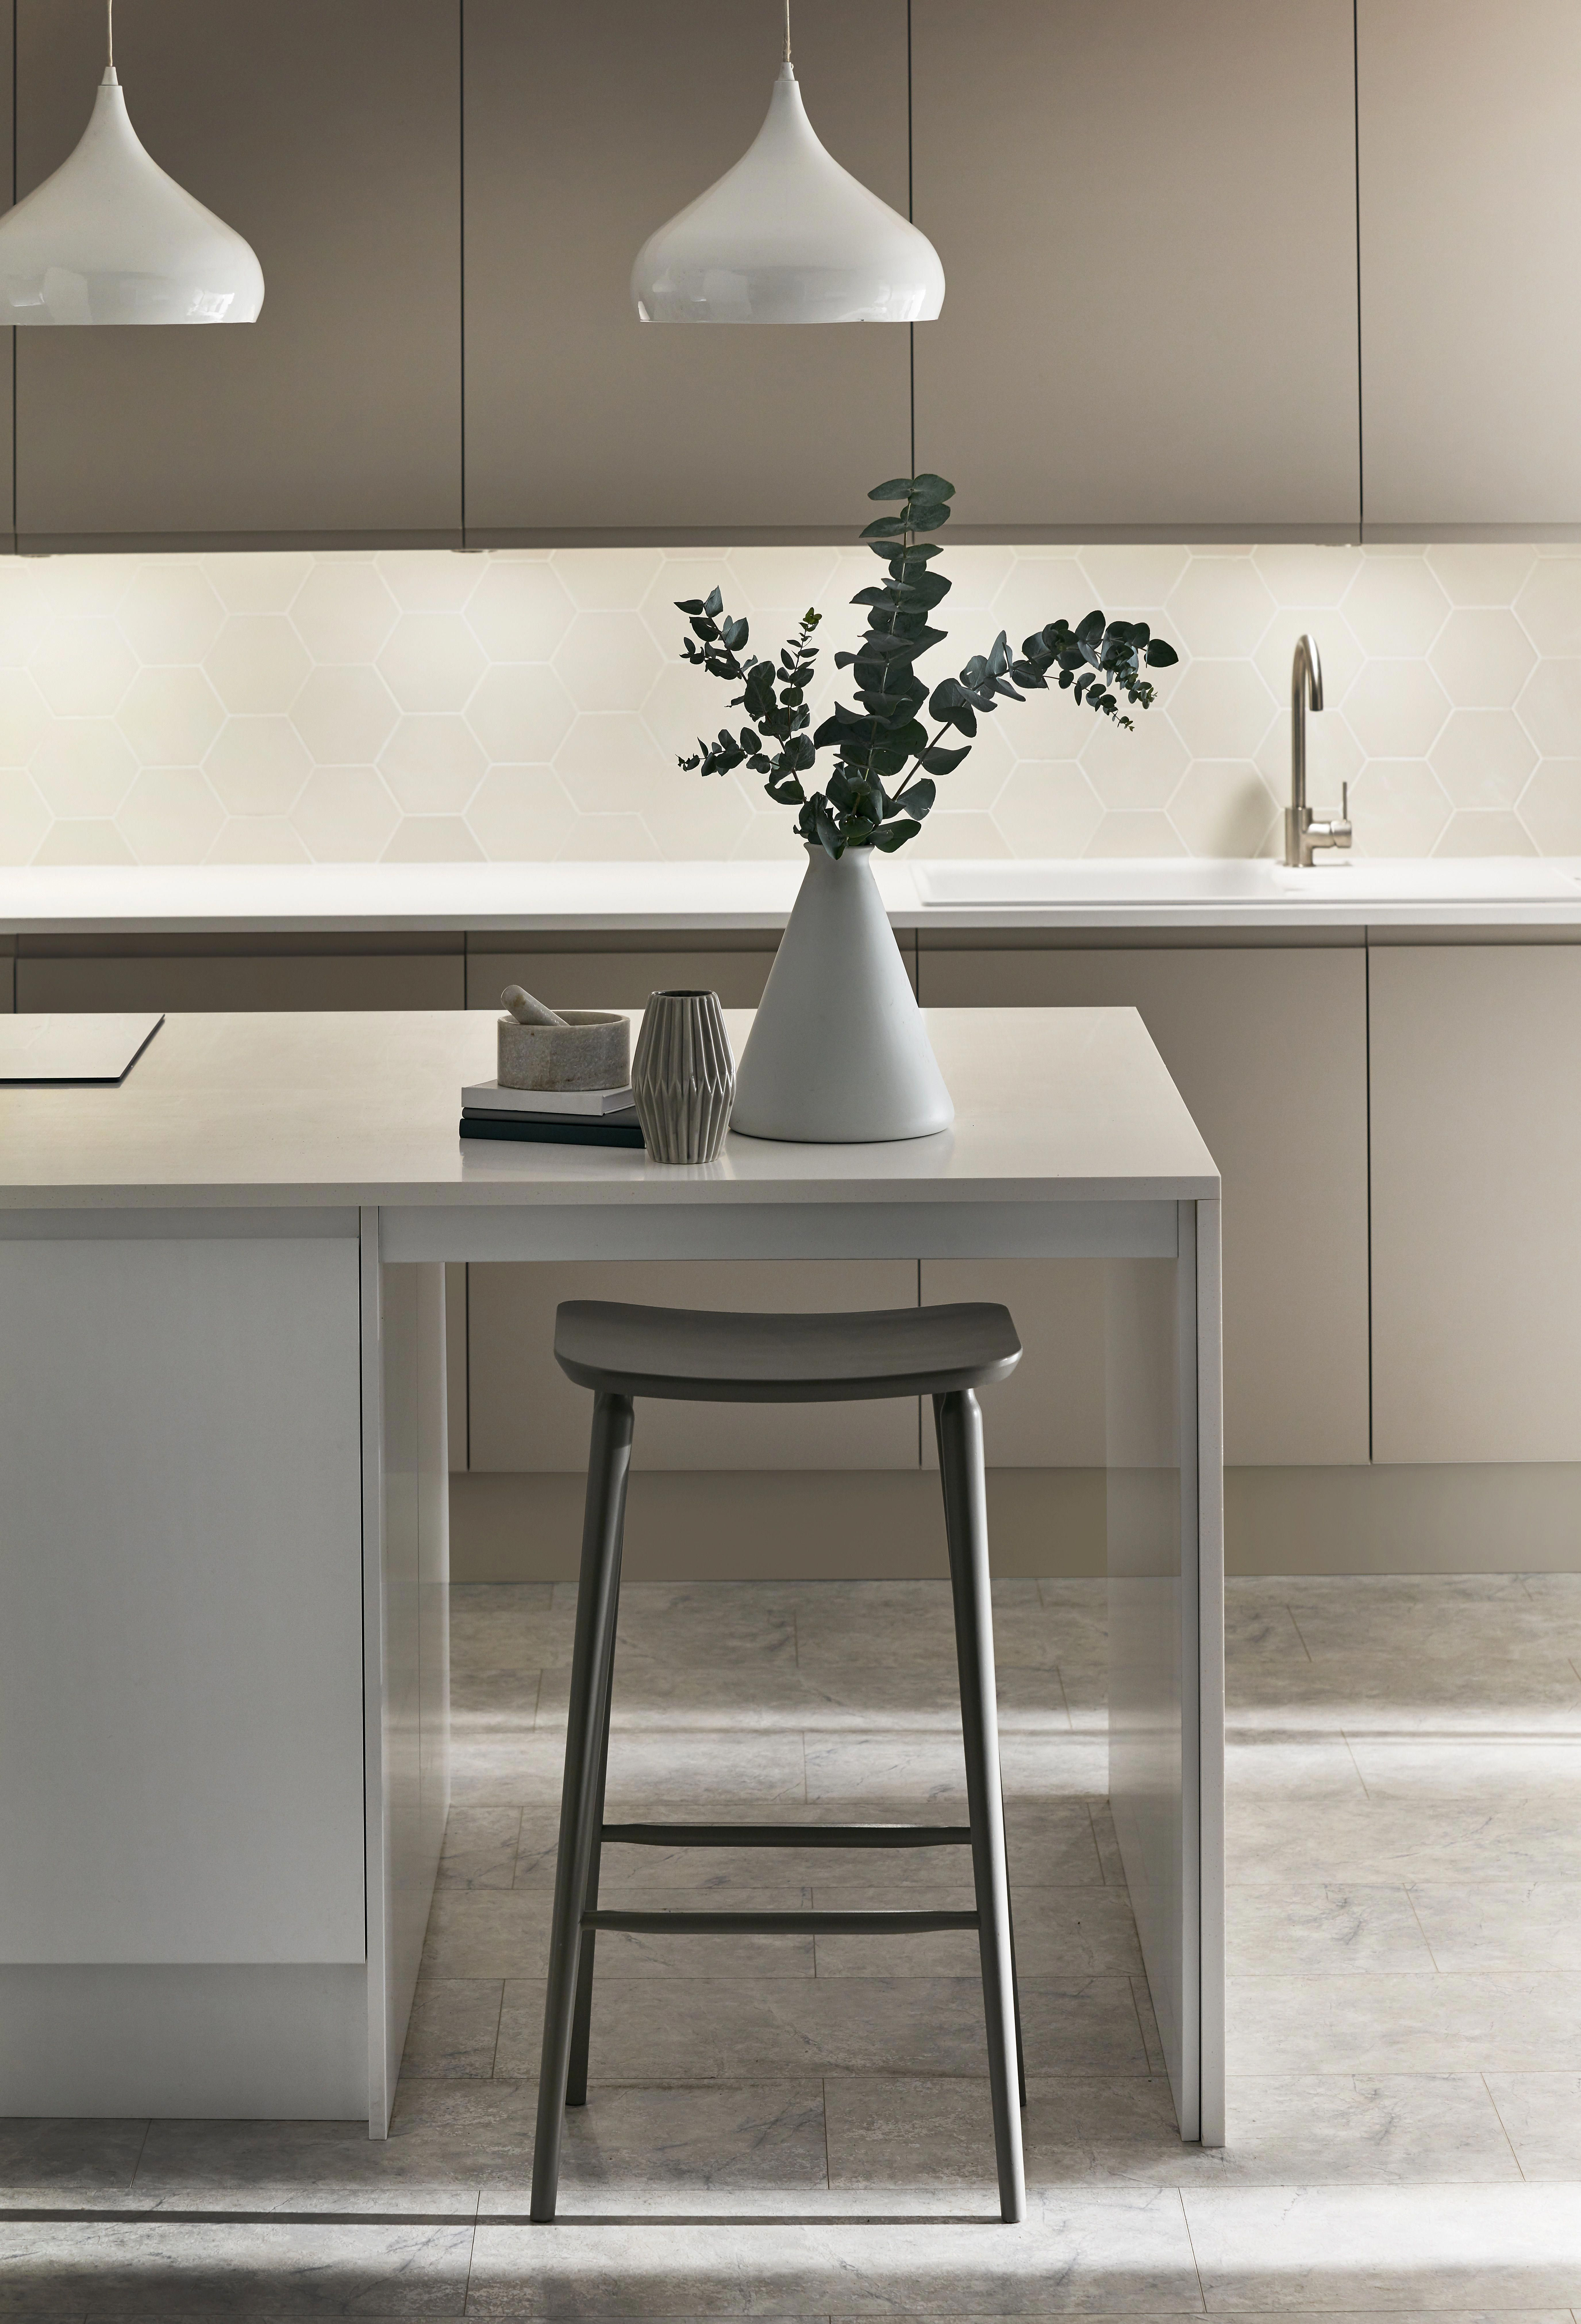 Clean lines and calm, minimalist backdrops epitomise the